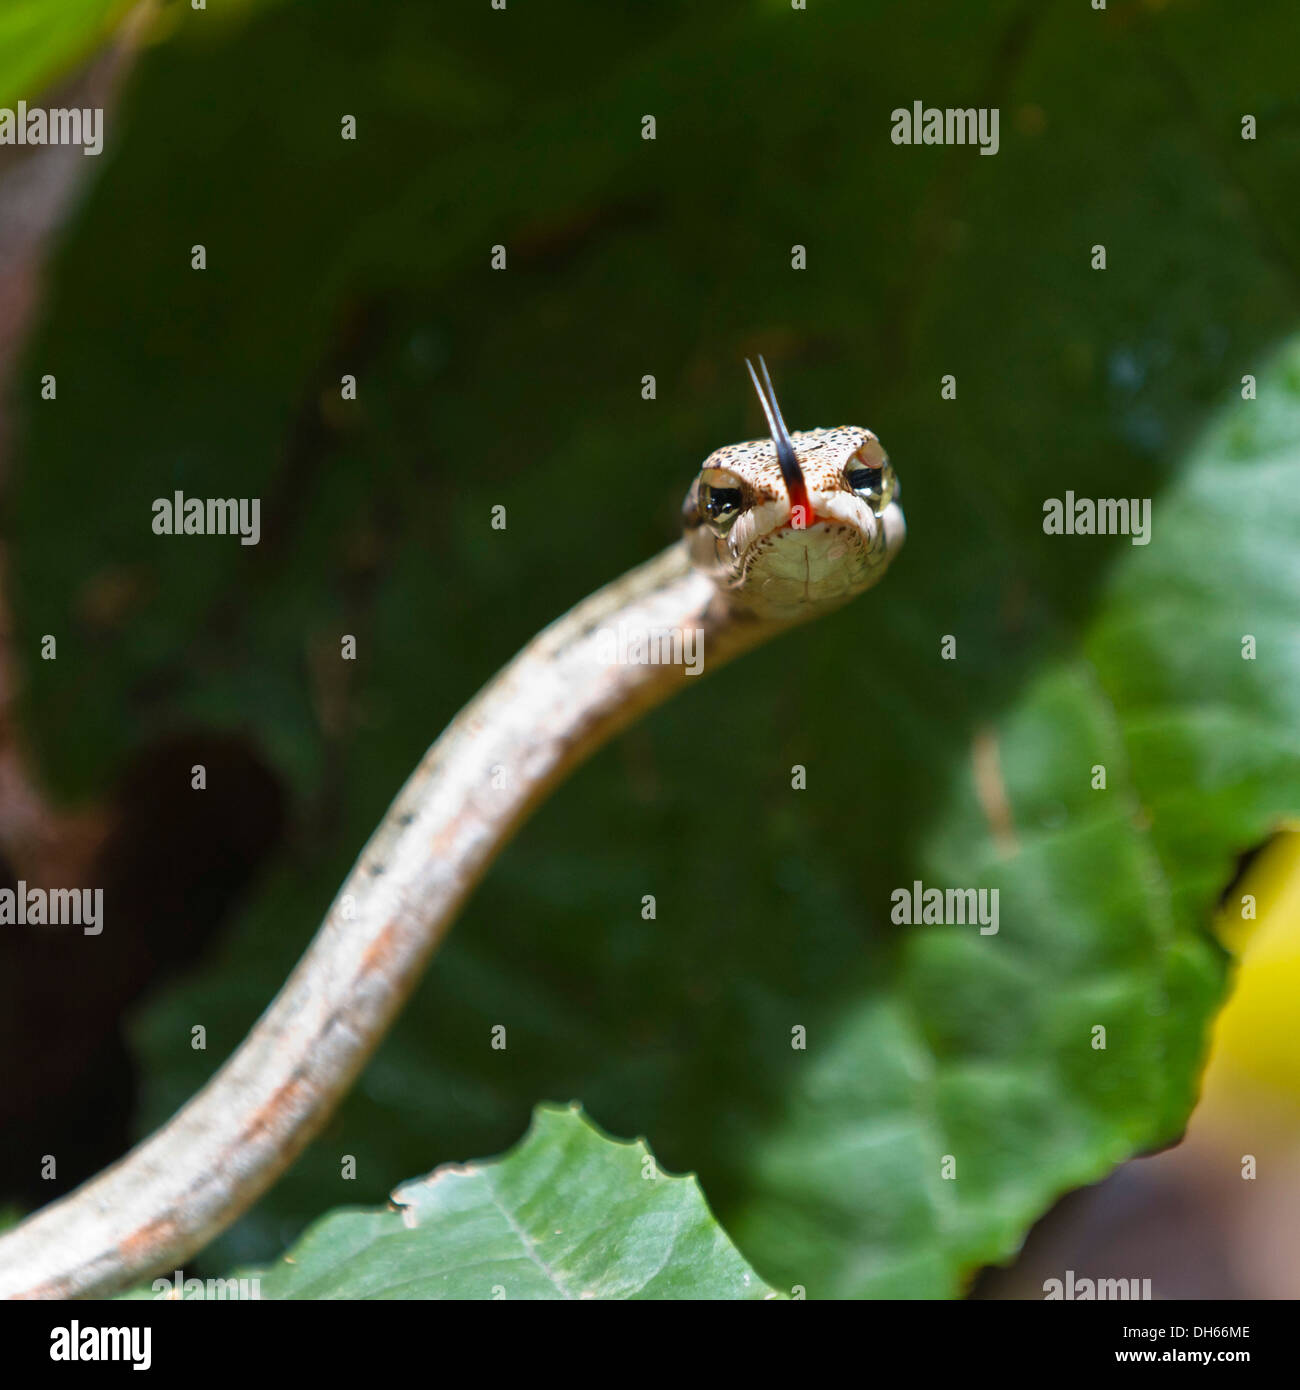 Twig or Bird Snake (Thelotornis capensis), on rainforest floor, Mahale Mountains National Park, Tanzania, East Africa, Africa - Stock Image